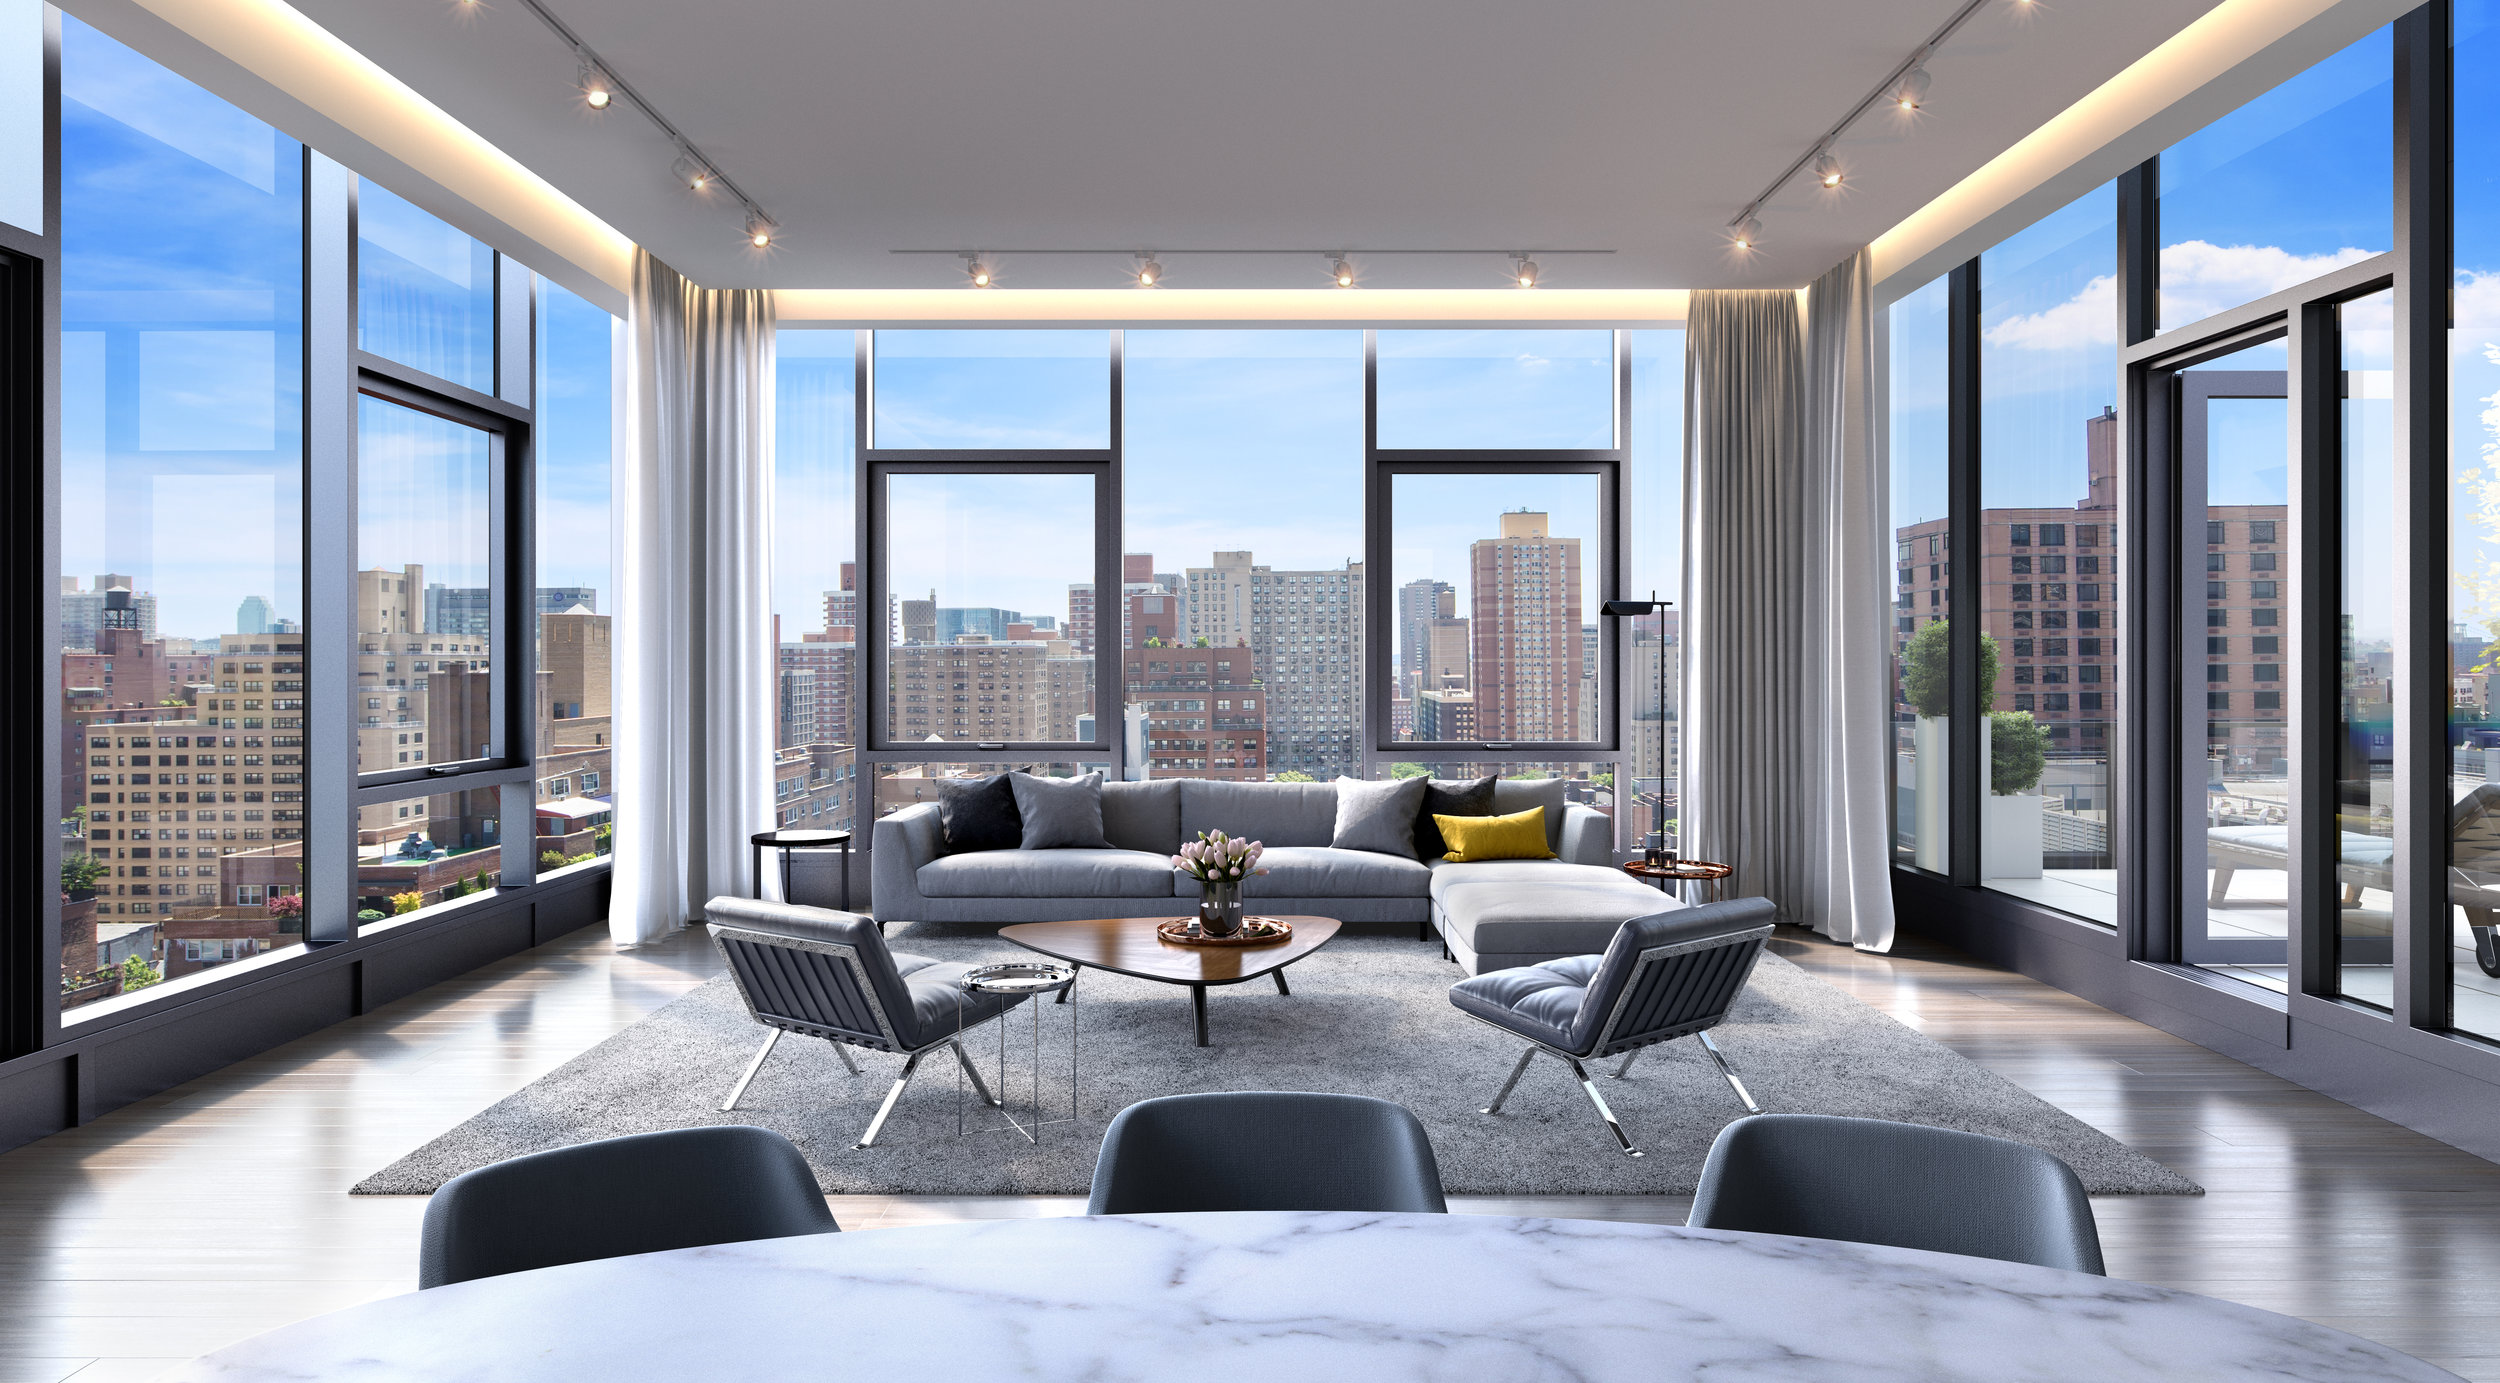 Get A First Look Inside The Only Available Penthouse In The Modern Half Of 88&90 Lexington